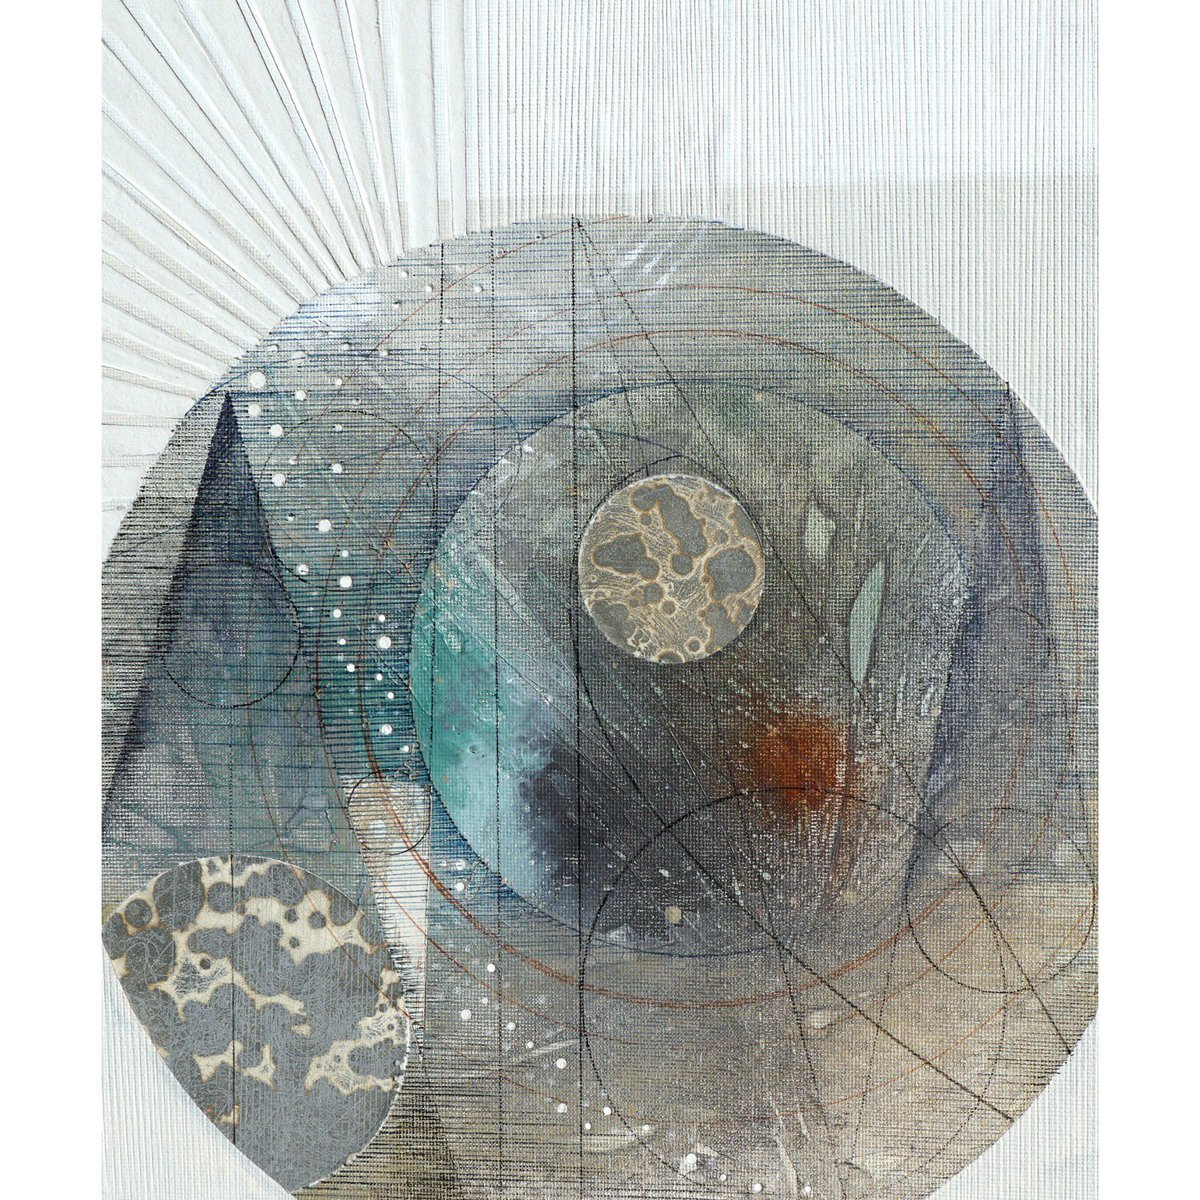 Transit #collage with #acrylic #pen and #etching - #abstract #celestial #mapping #stars<br>http://pic.twitter.com/xXEm27bsQl